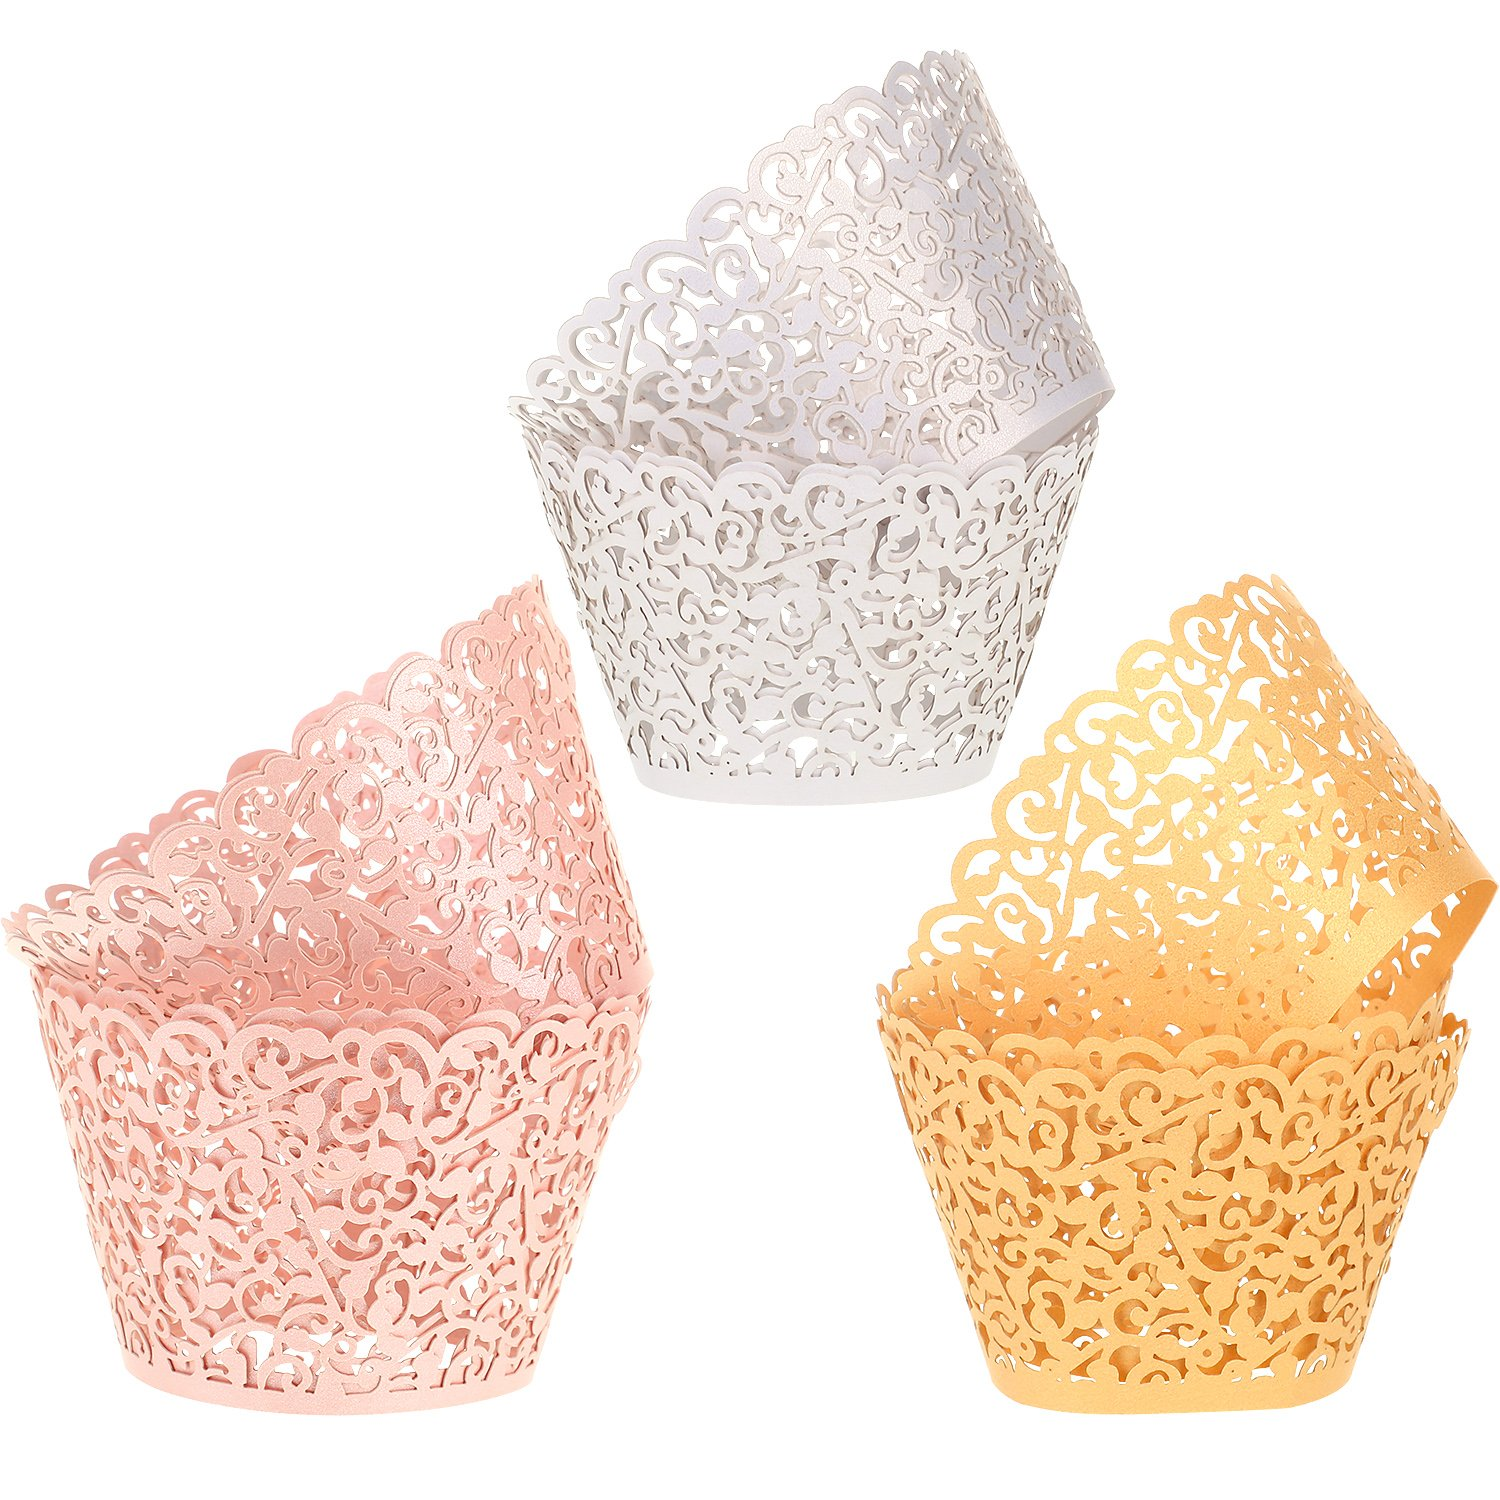 Leinuosen 150 Pieces Cupcake Wrappers Filigree Vine Cupcake Wraps Lace Cupcake Liners for Wedding Birthday Baby Shower Parties Decoration (Gold, White and Pink)